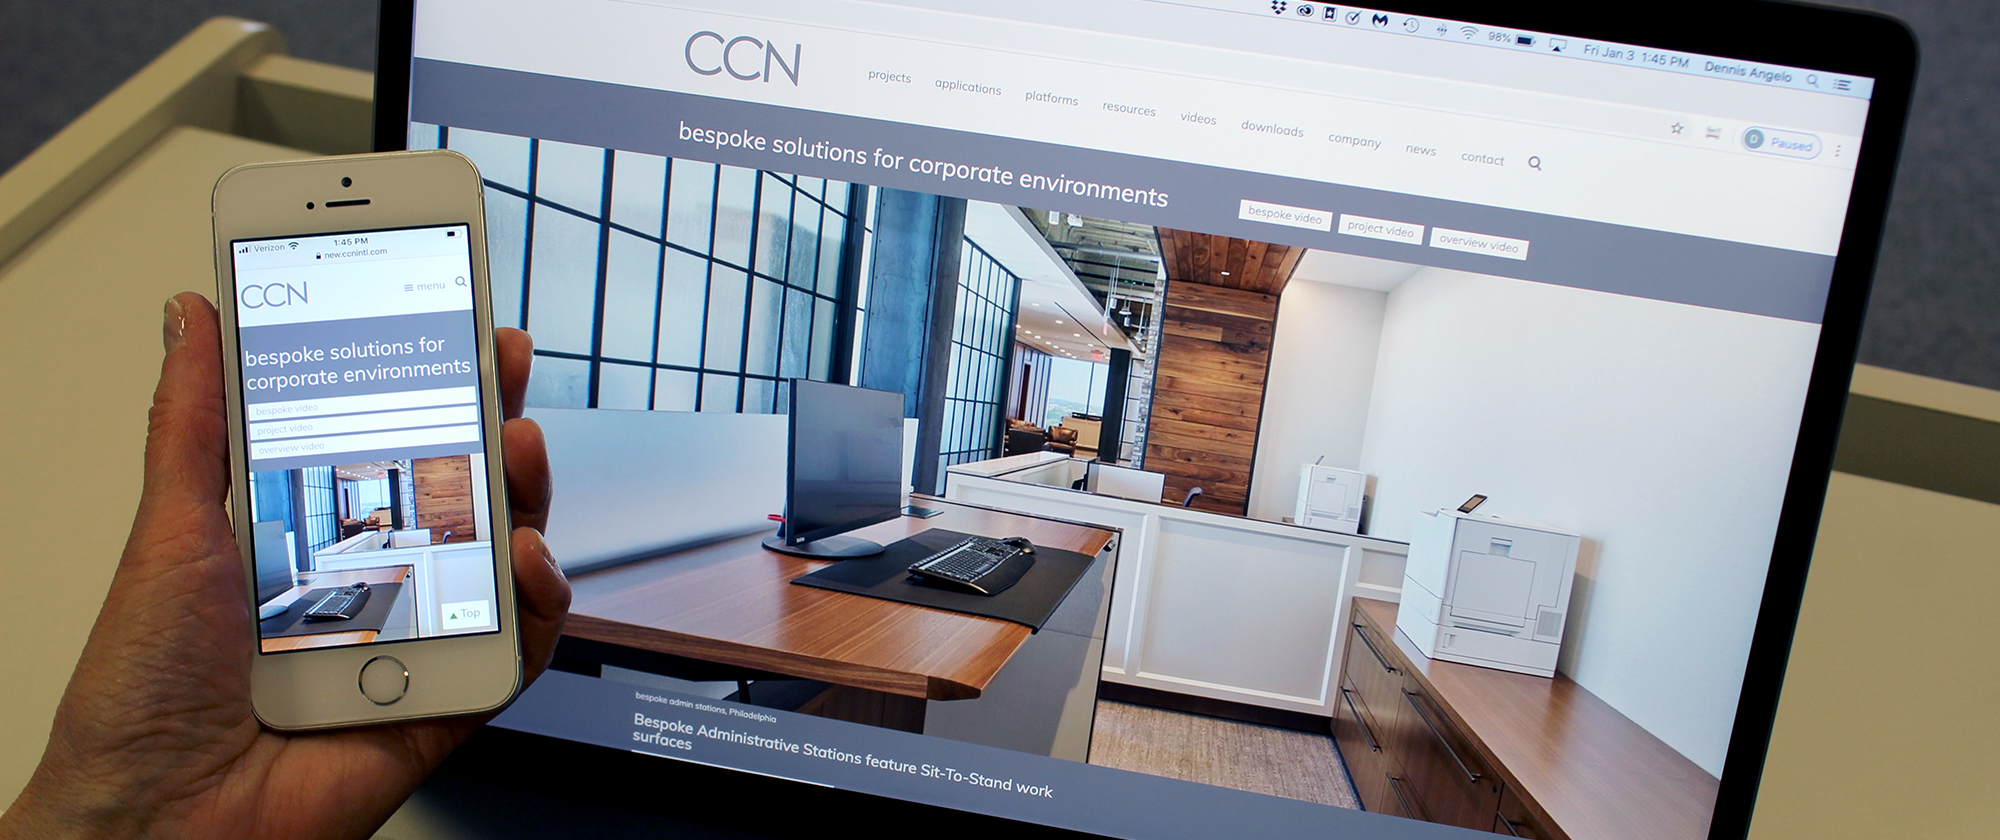 ccn international website